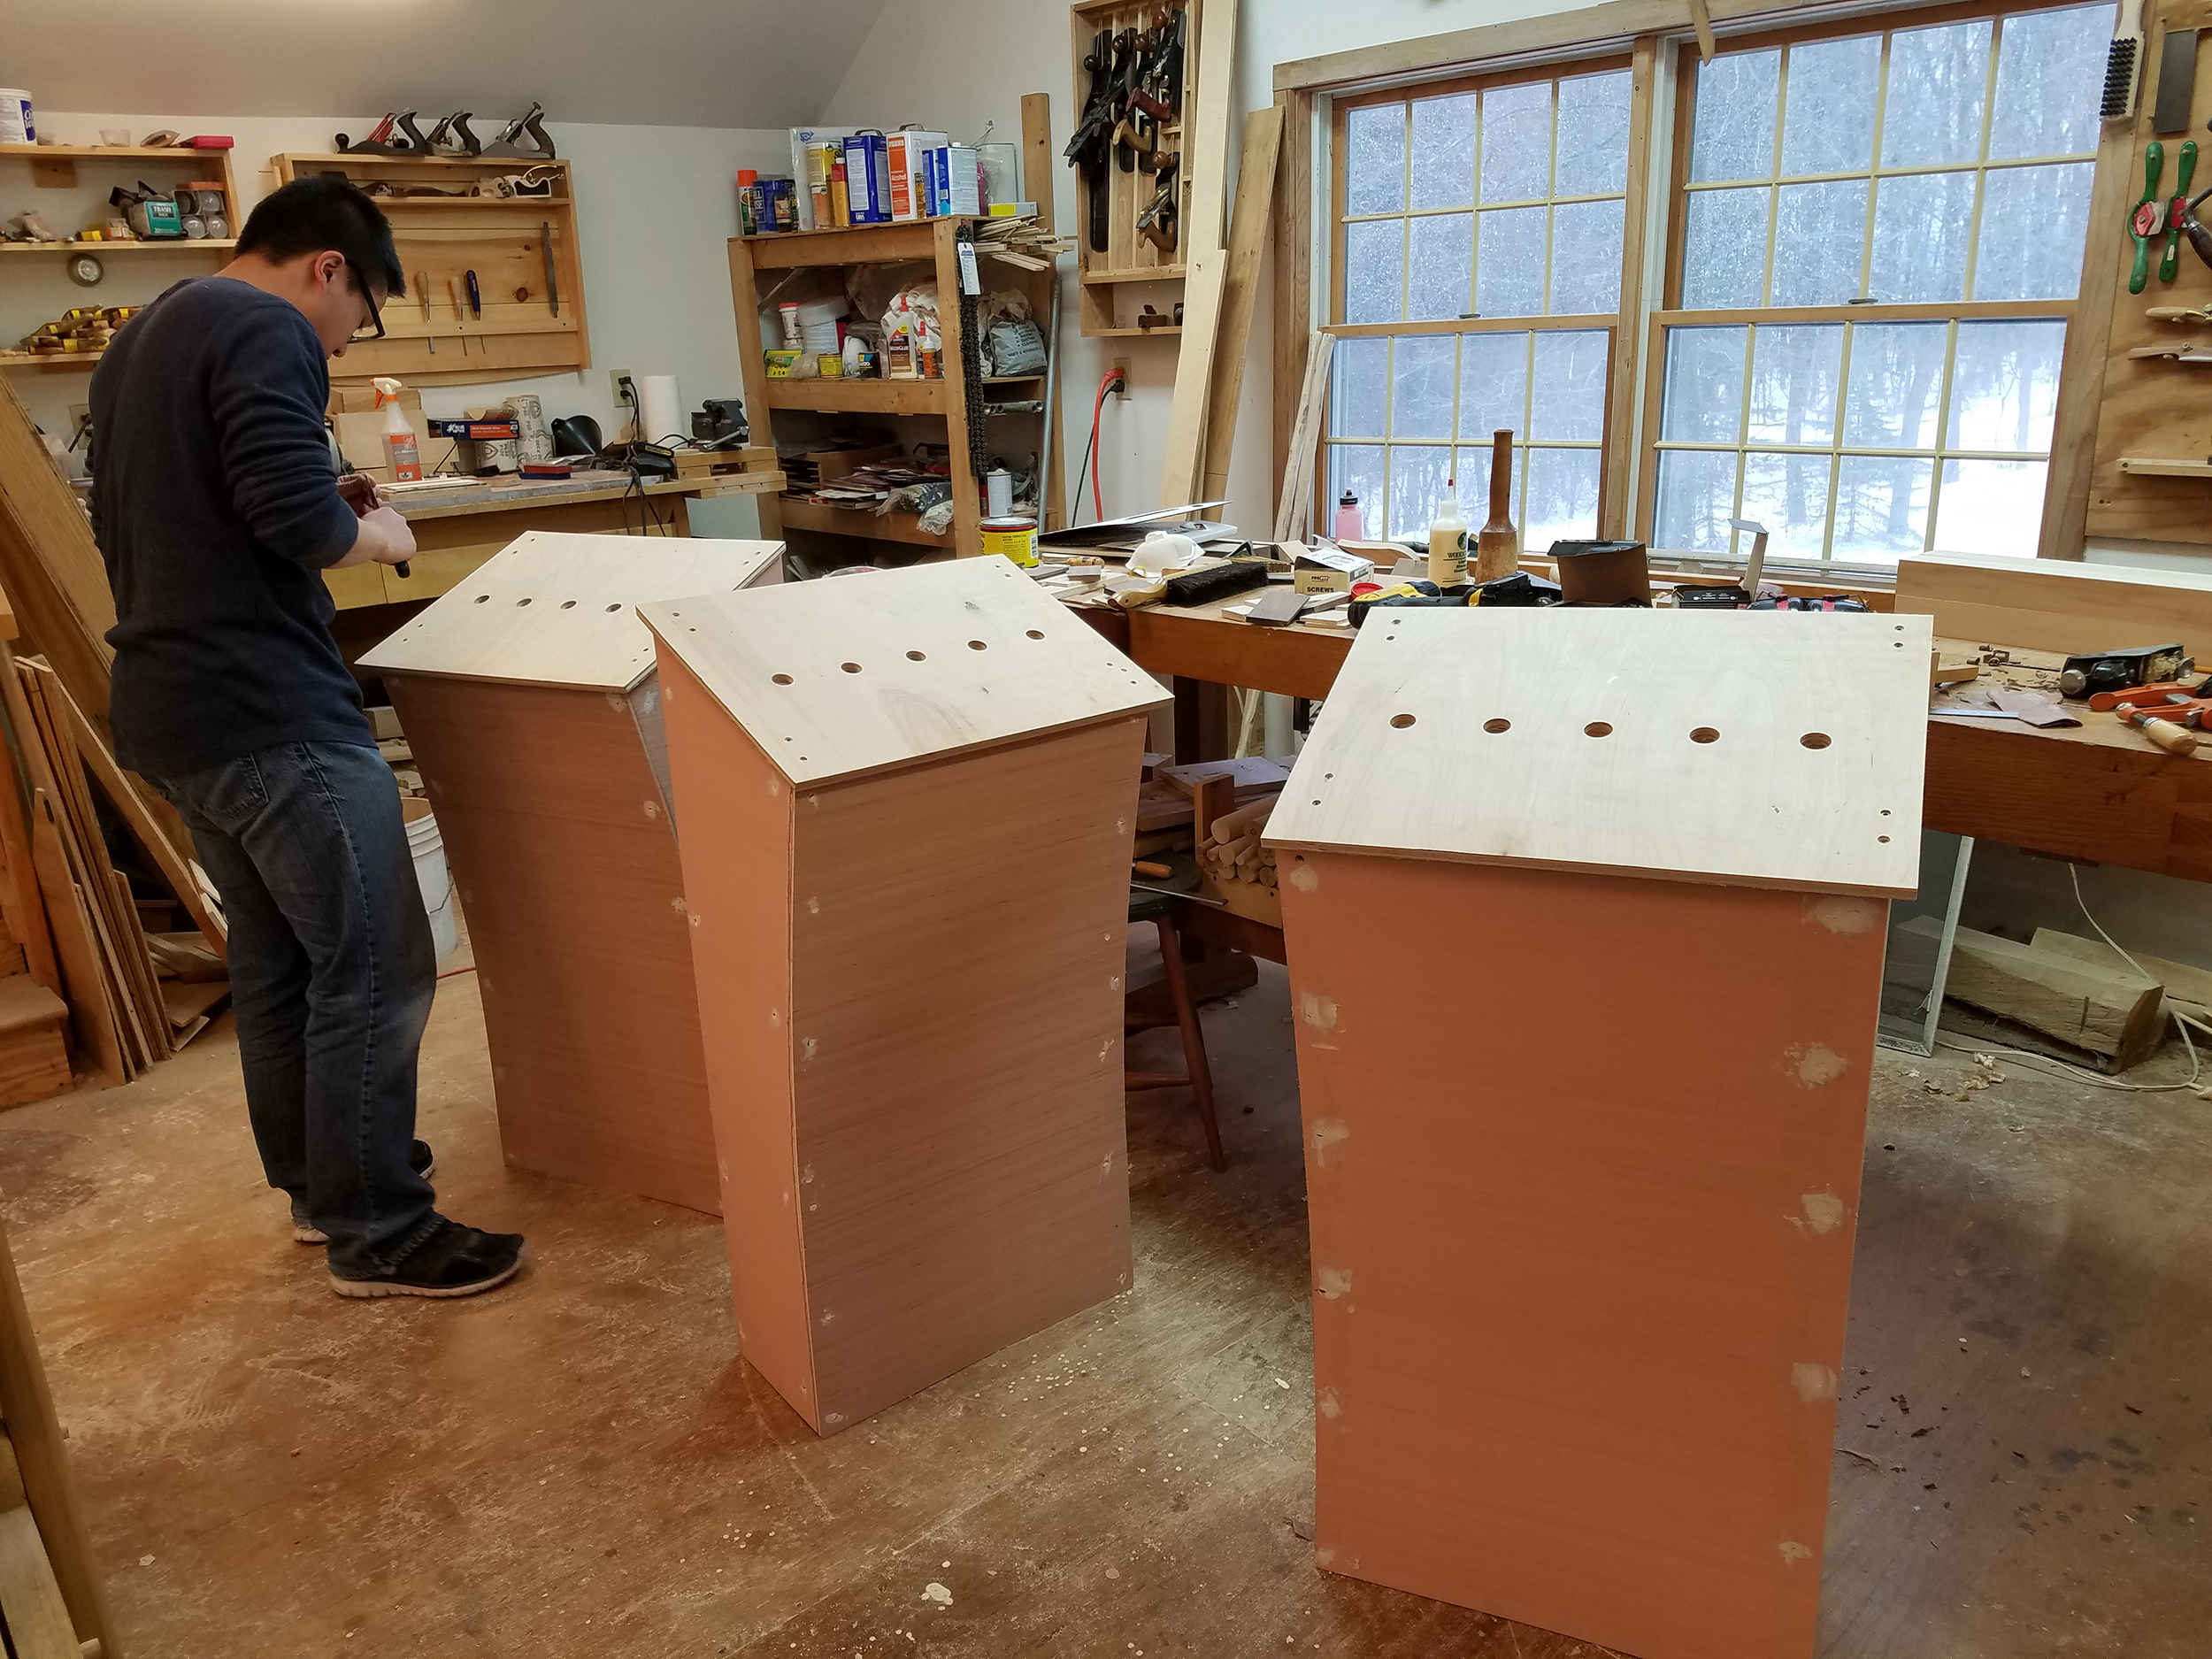 3 podiums under construction in a house